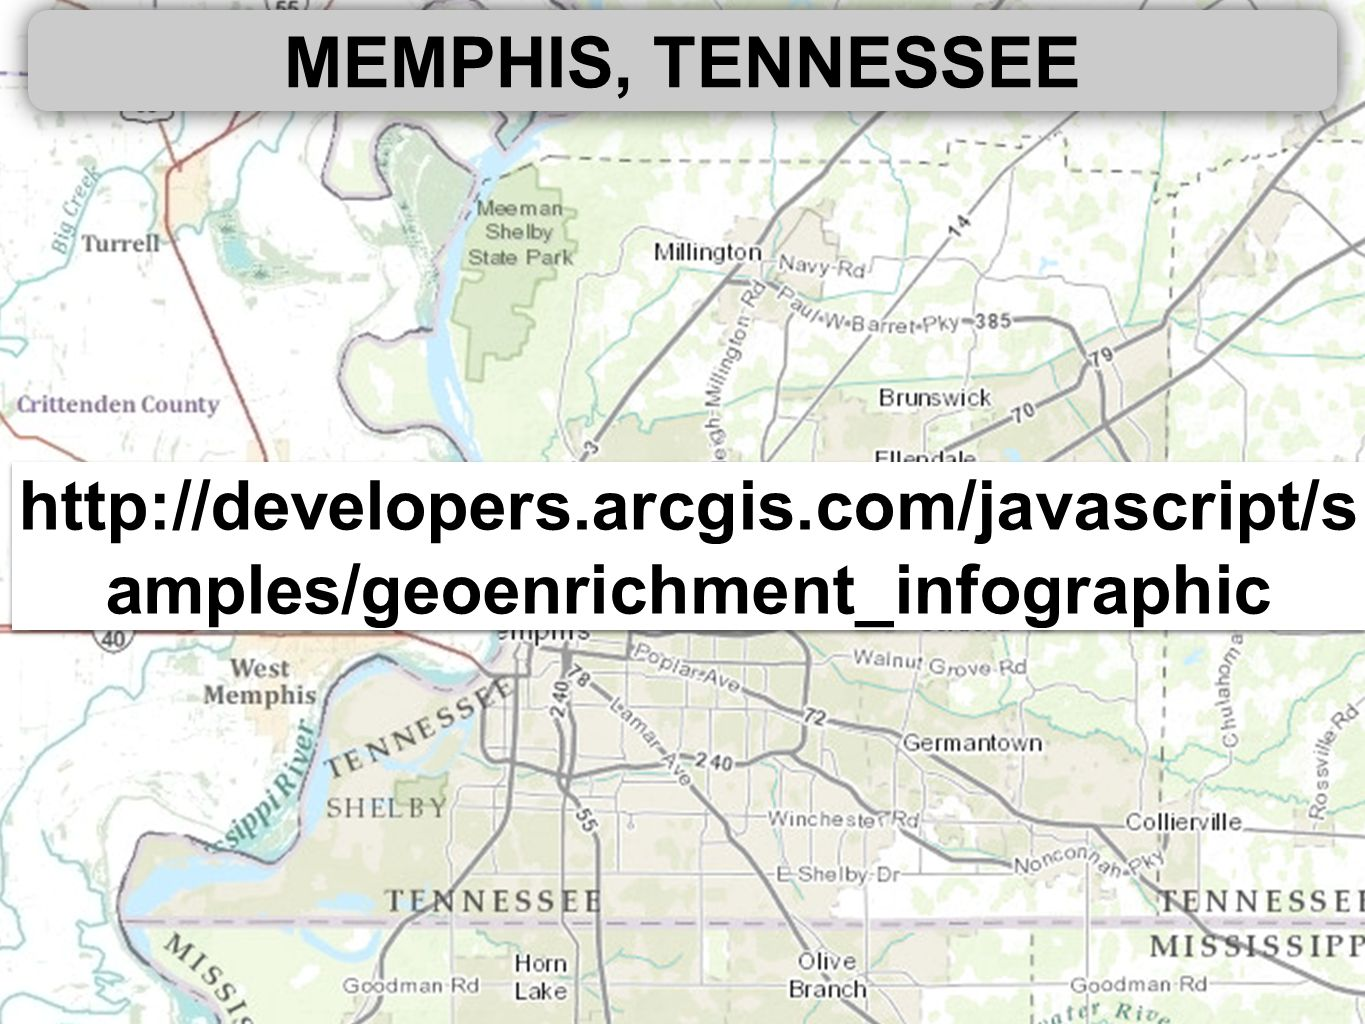 MEMPHIS, TENNESSEE http://developers.arcgis.com/javascript/s amples/geoenrichment_infographic